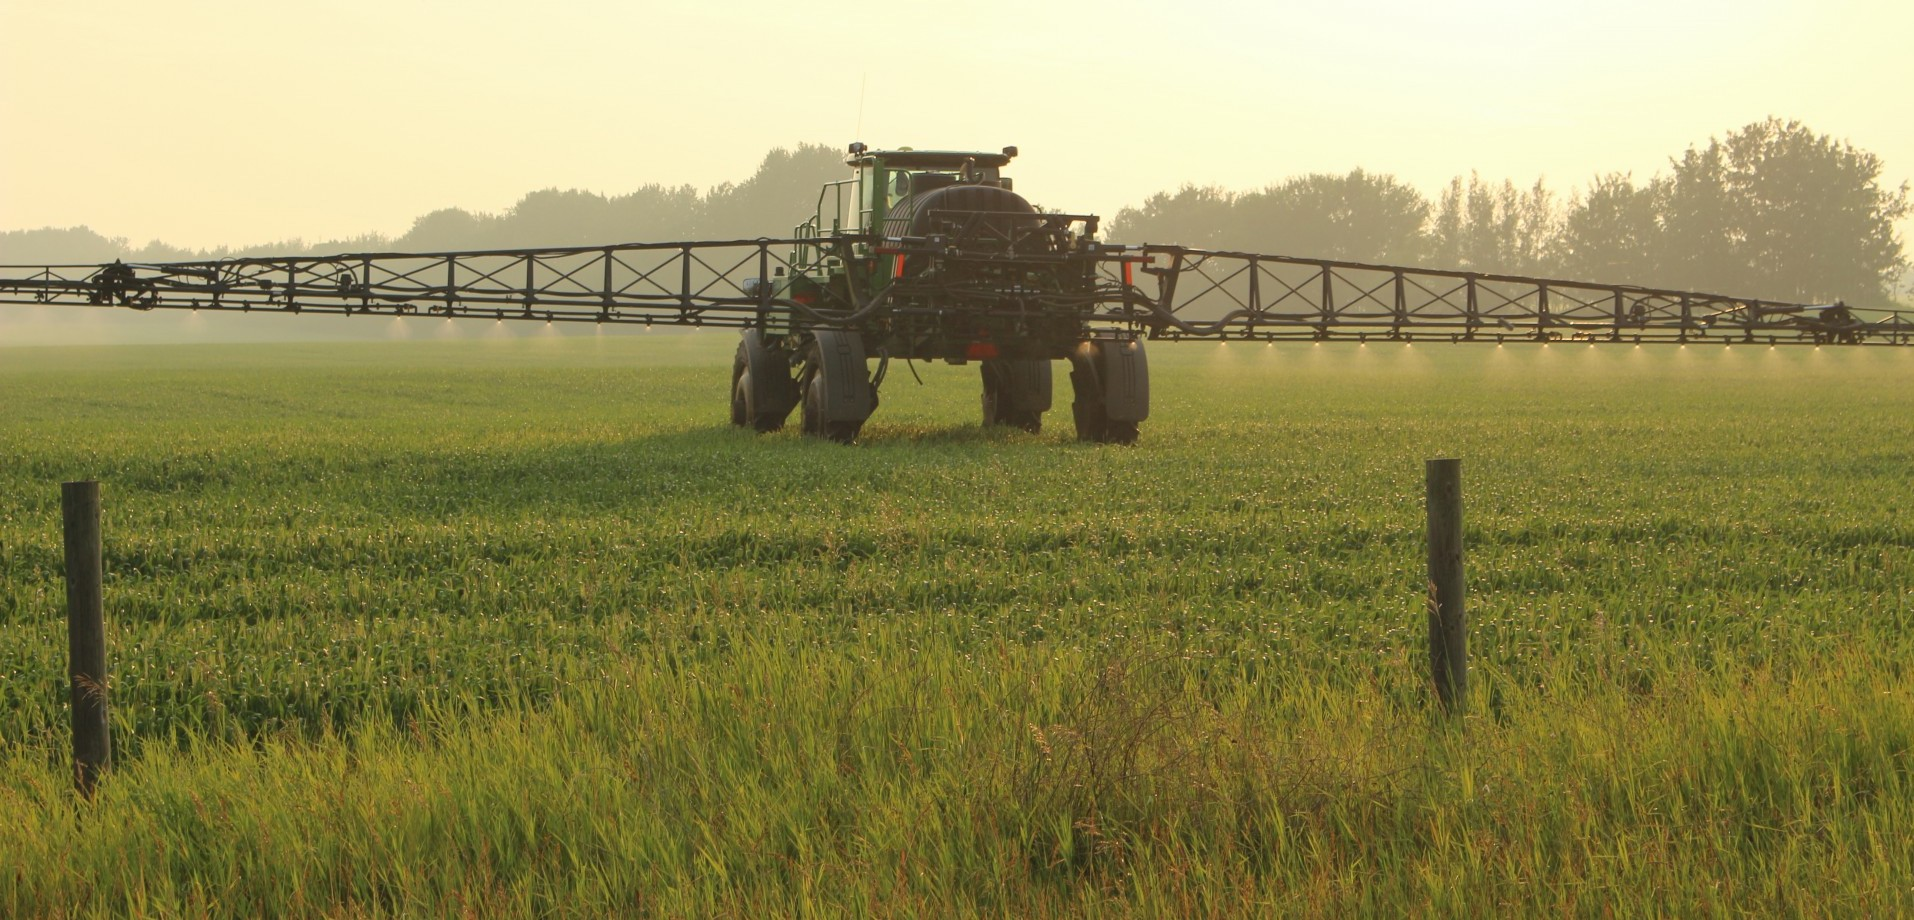 Crop sprayer tractor